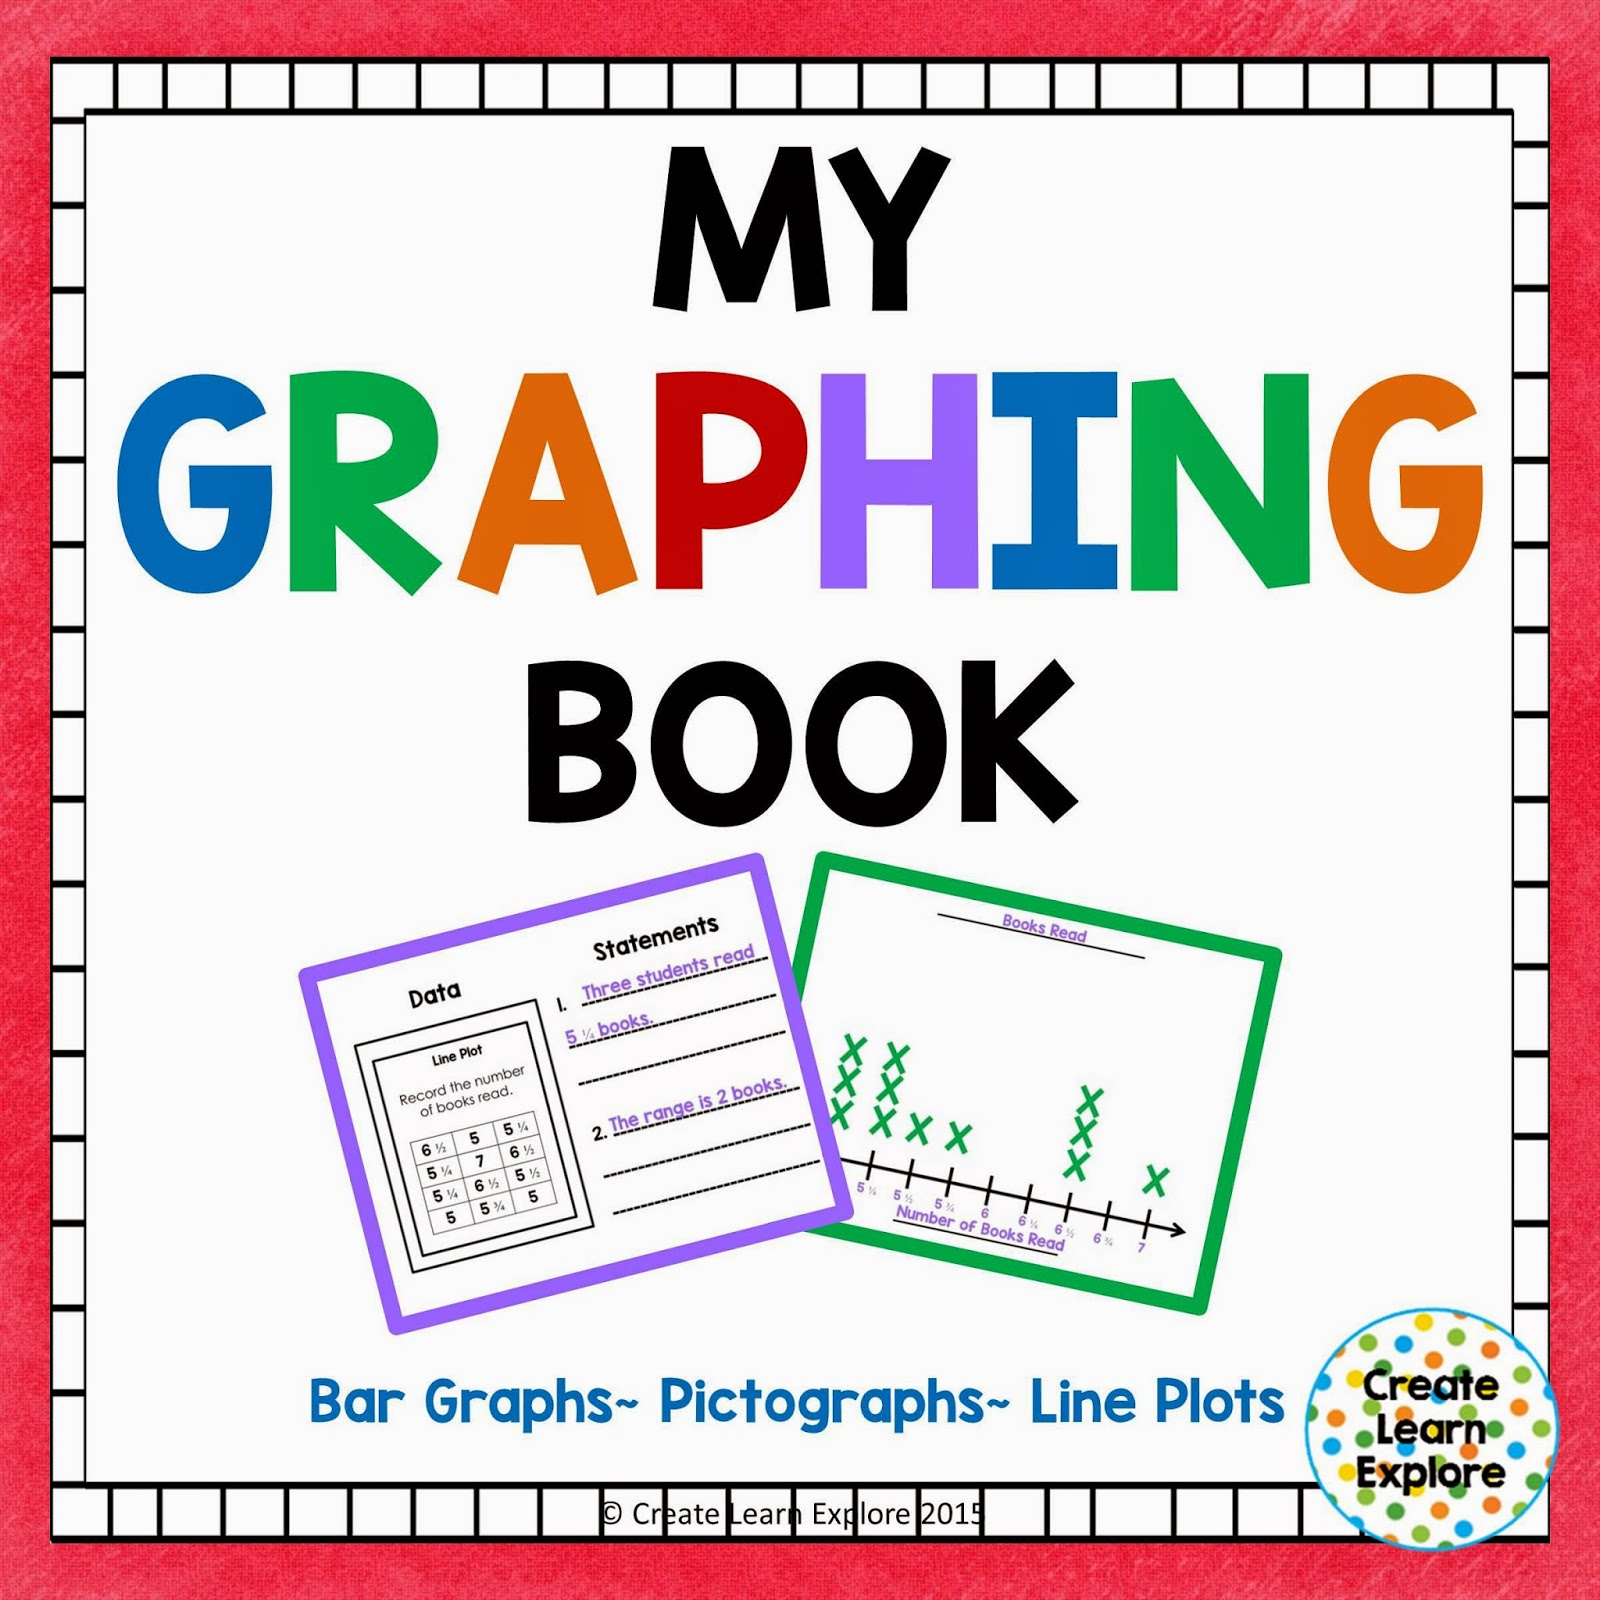 https://www.teacherspayteachers.com/Product/Graphing-Bar-Graphs-Pictographs-Line-Plots-My-Graphing-Book-1679508